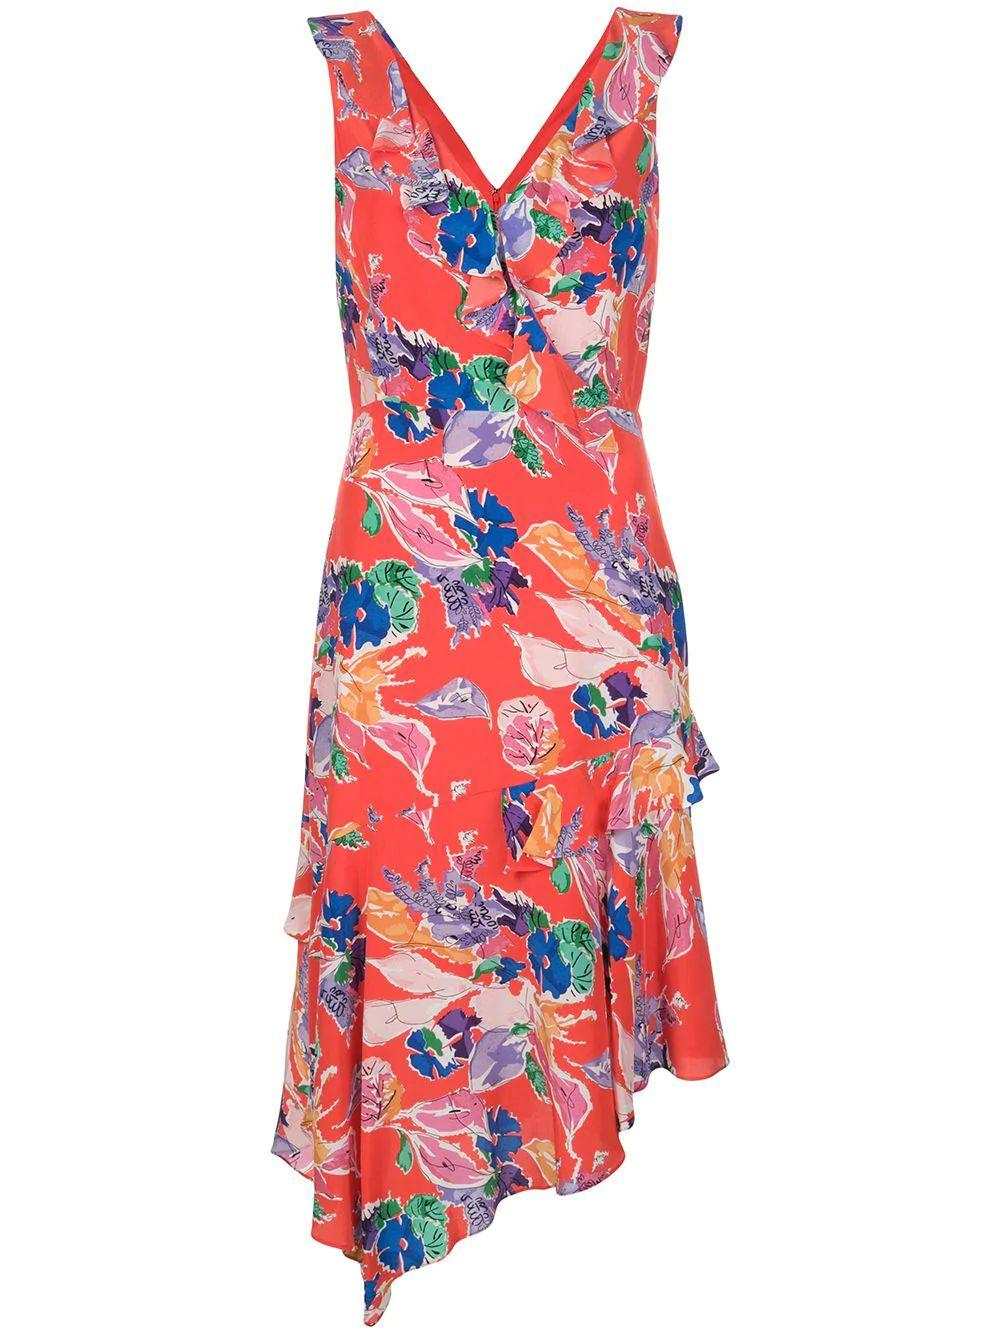 Bouquet Floral Silk Alexis Dress